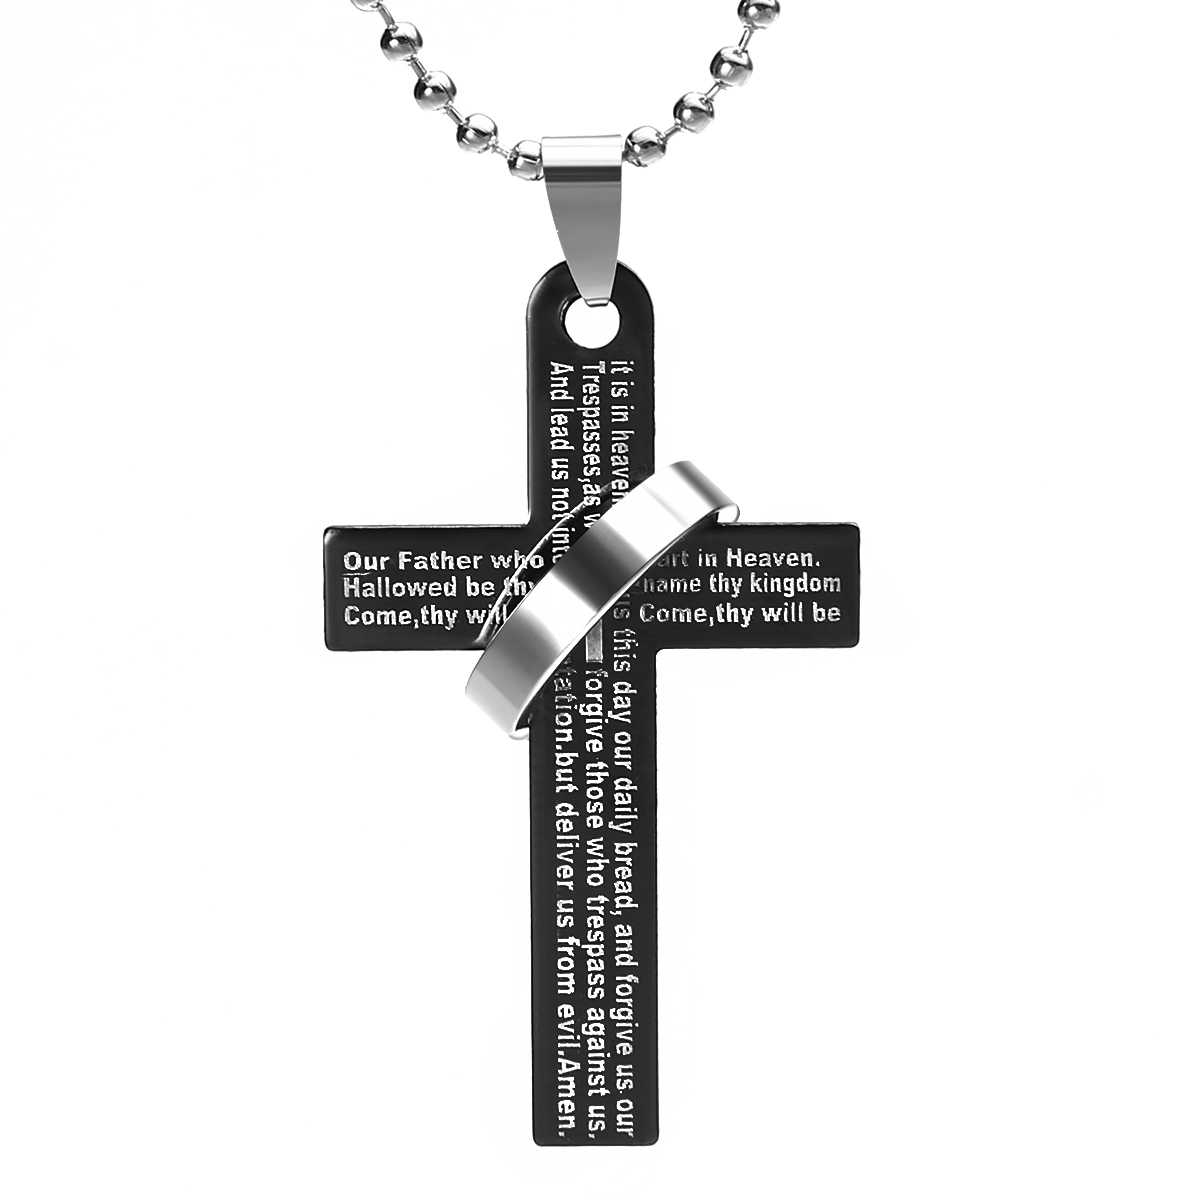 Vintage Cross Pendant Necklace Men Women Stainless Steel Long Chain Necklace Ethnic Prayer Scripture Cross Pendant Retro Jewelry